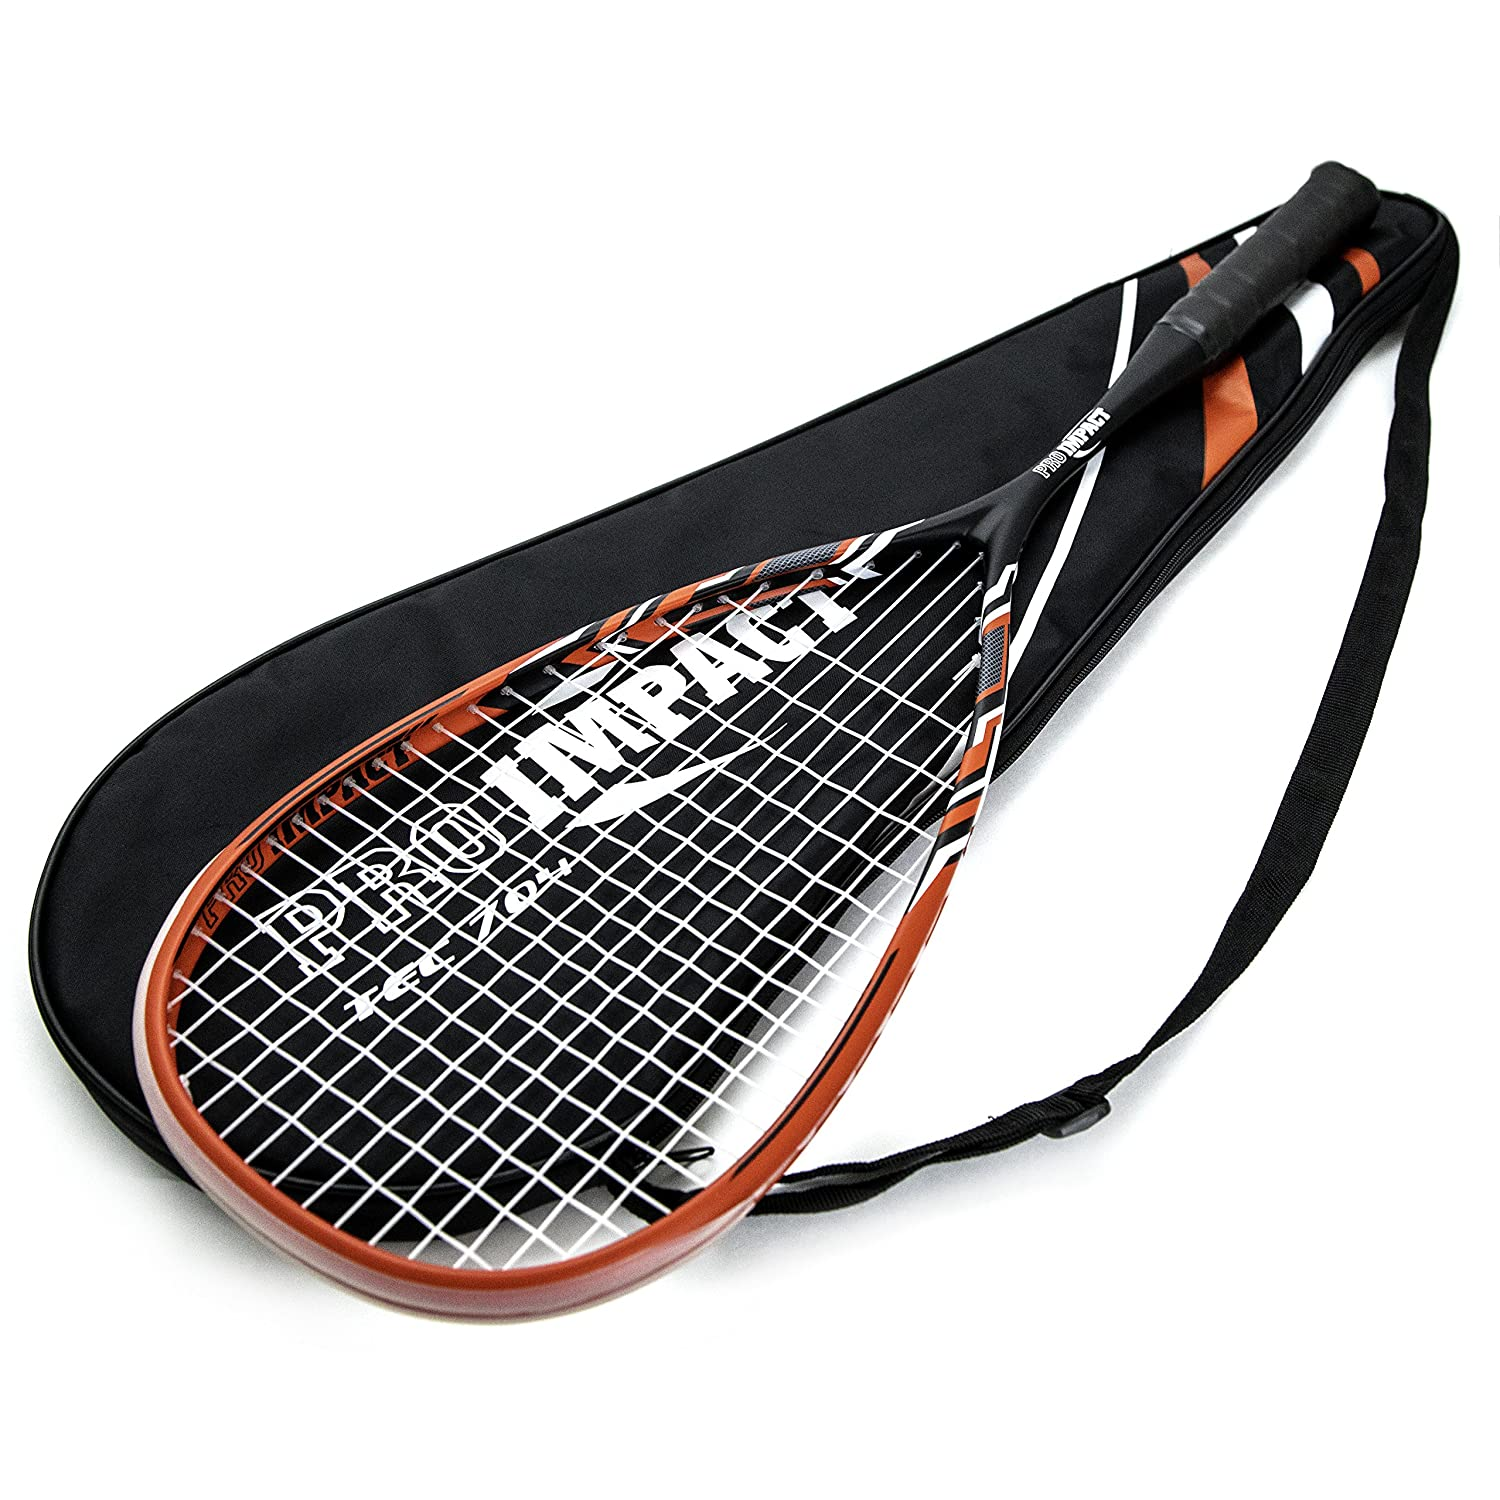 Pro Impact Graphite Squash Racket Full Size with Carry On Cover and Durable Strings Made of Pure Graphite Designed to Improve Gameplay for All Skill Levels